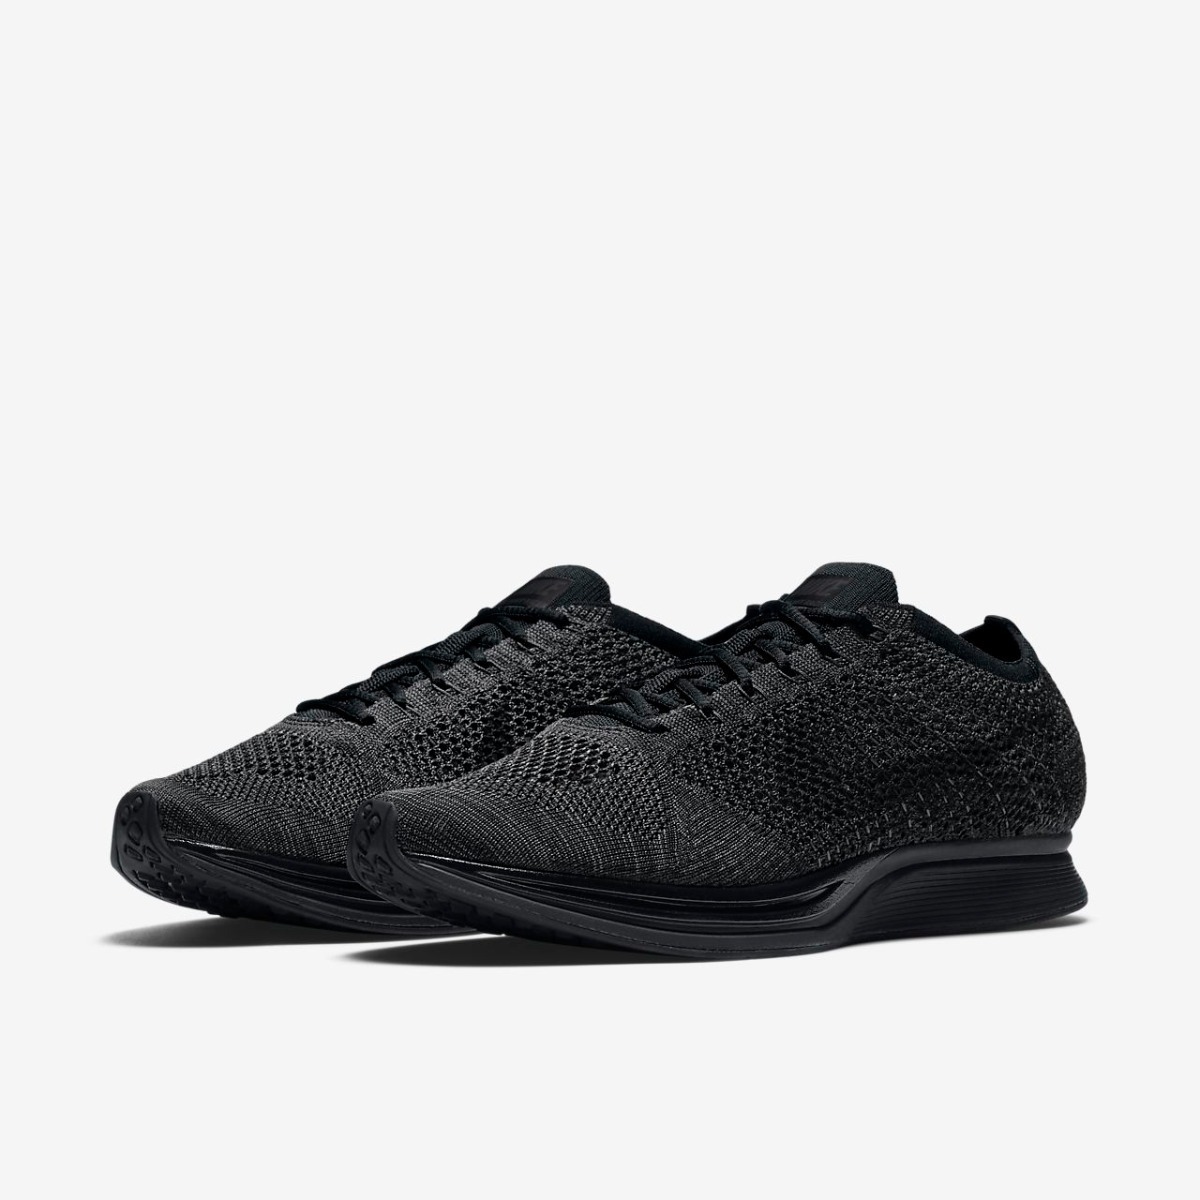 Tenis Nike Flyknit Racer Originales Running Competencia